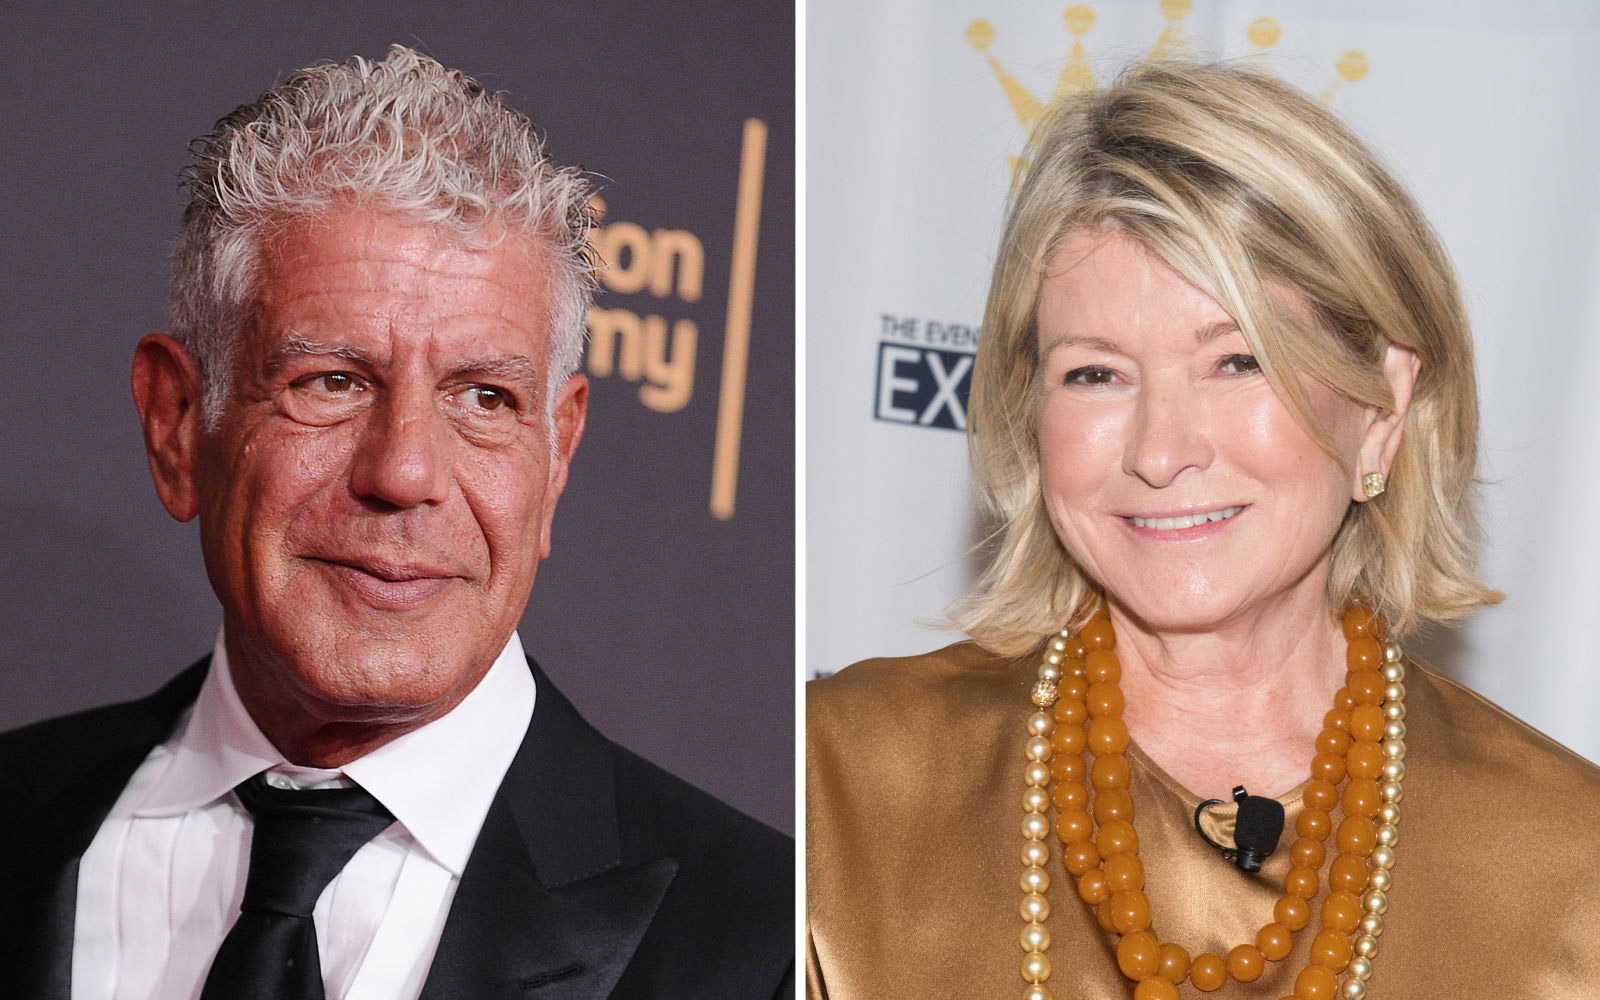 Martha Stewart Vs. Anthony Bourdain: Who Cooks Better Scrambled Eggs?